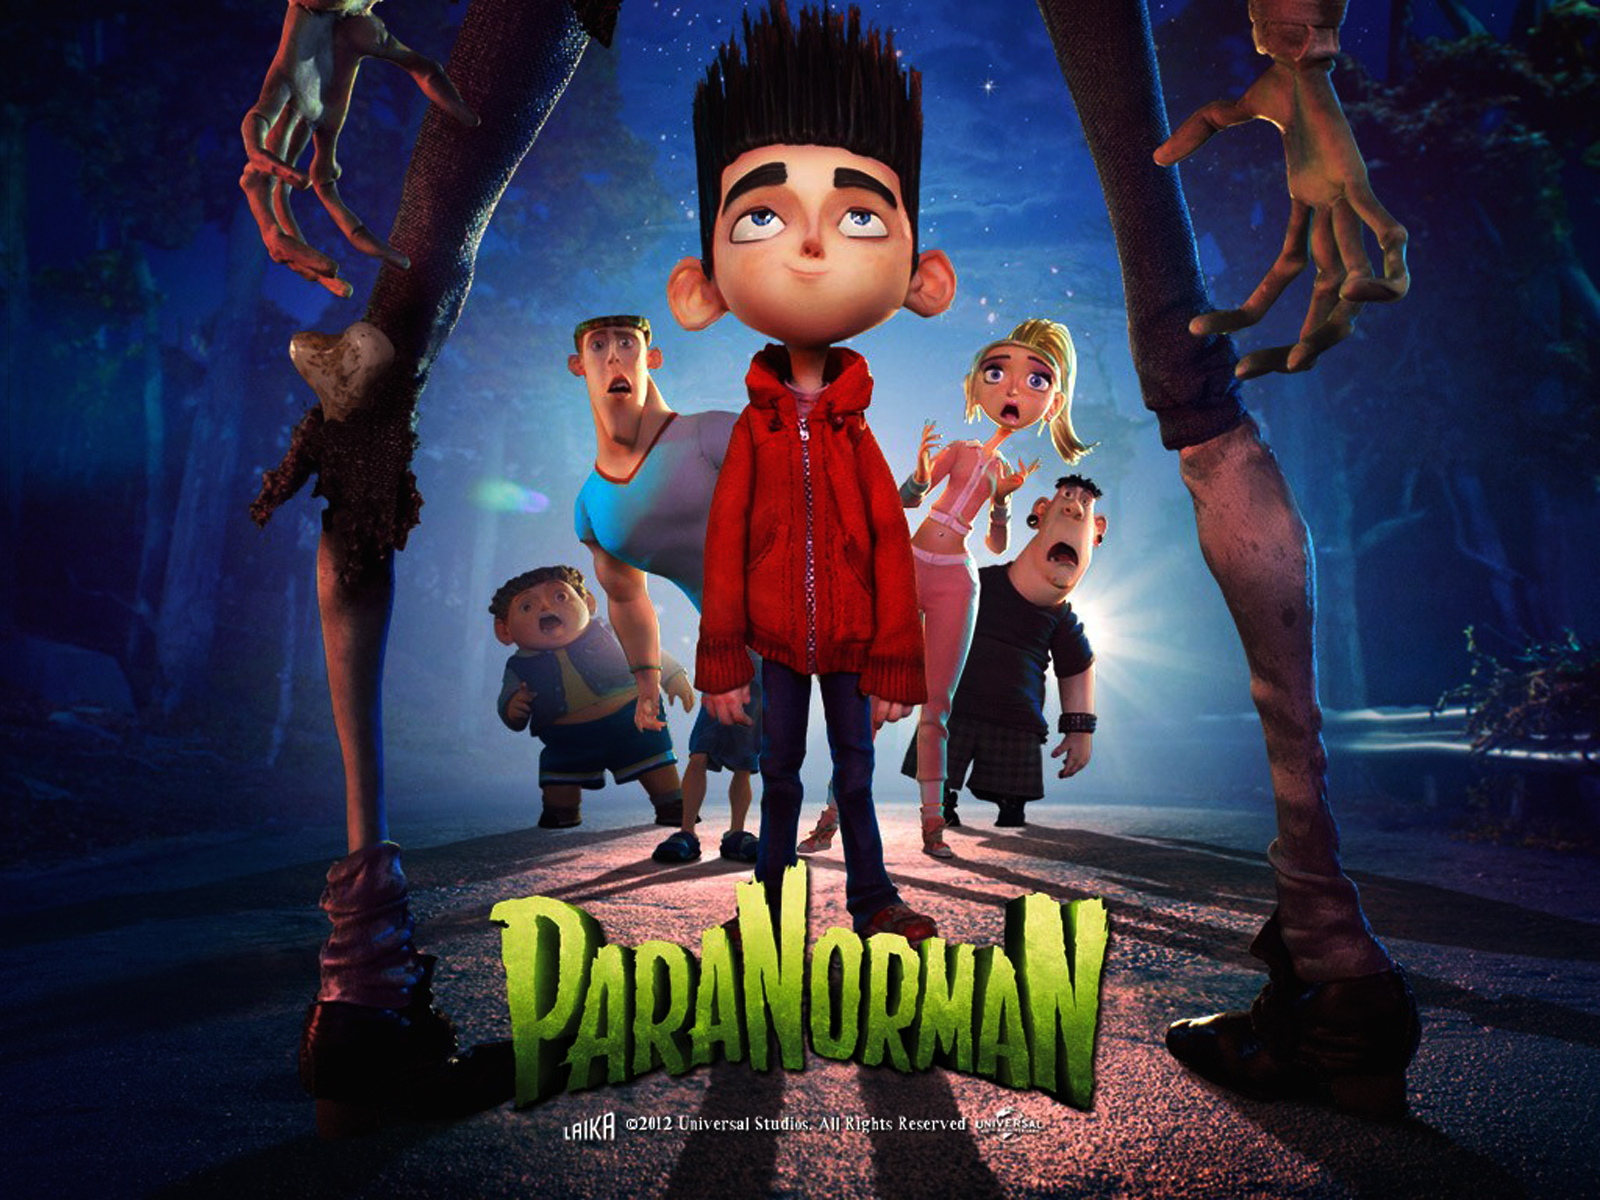 Paranorman Animation Movie Hd Wallpaper 3d Animation Movie Character 1600x1200 Download Hd Wallpaper Wallpapertip